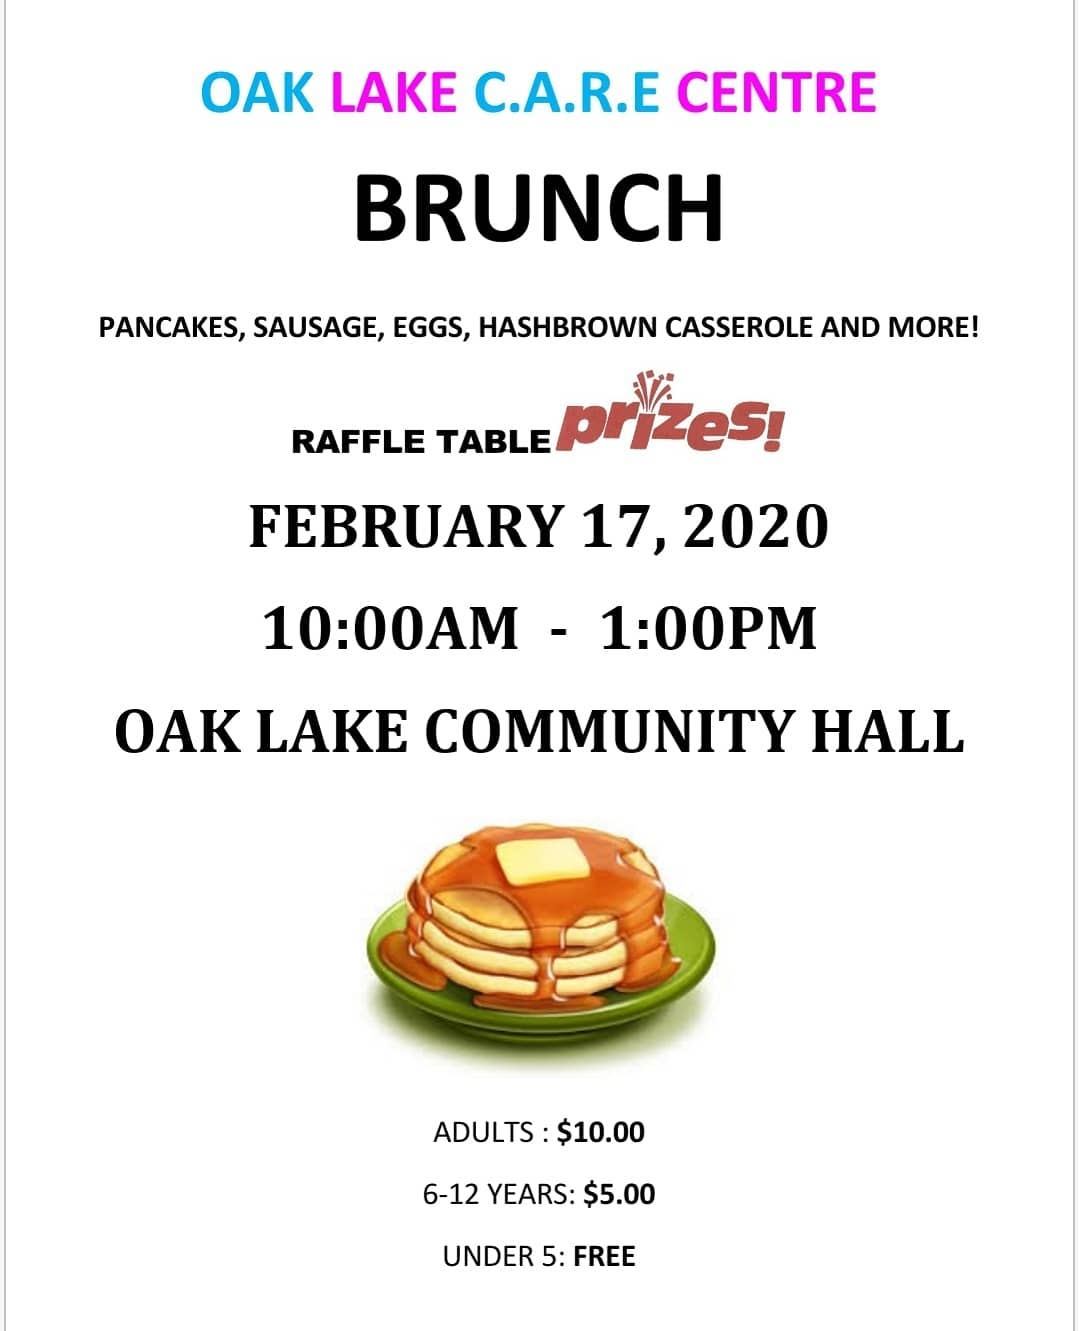 Oak Lake CARE Centre Brunch @ Oak Lake Community Hall